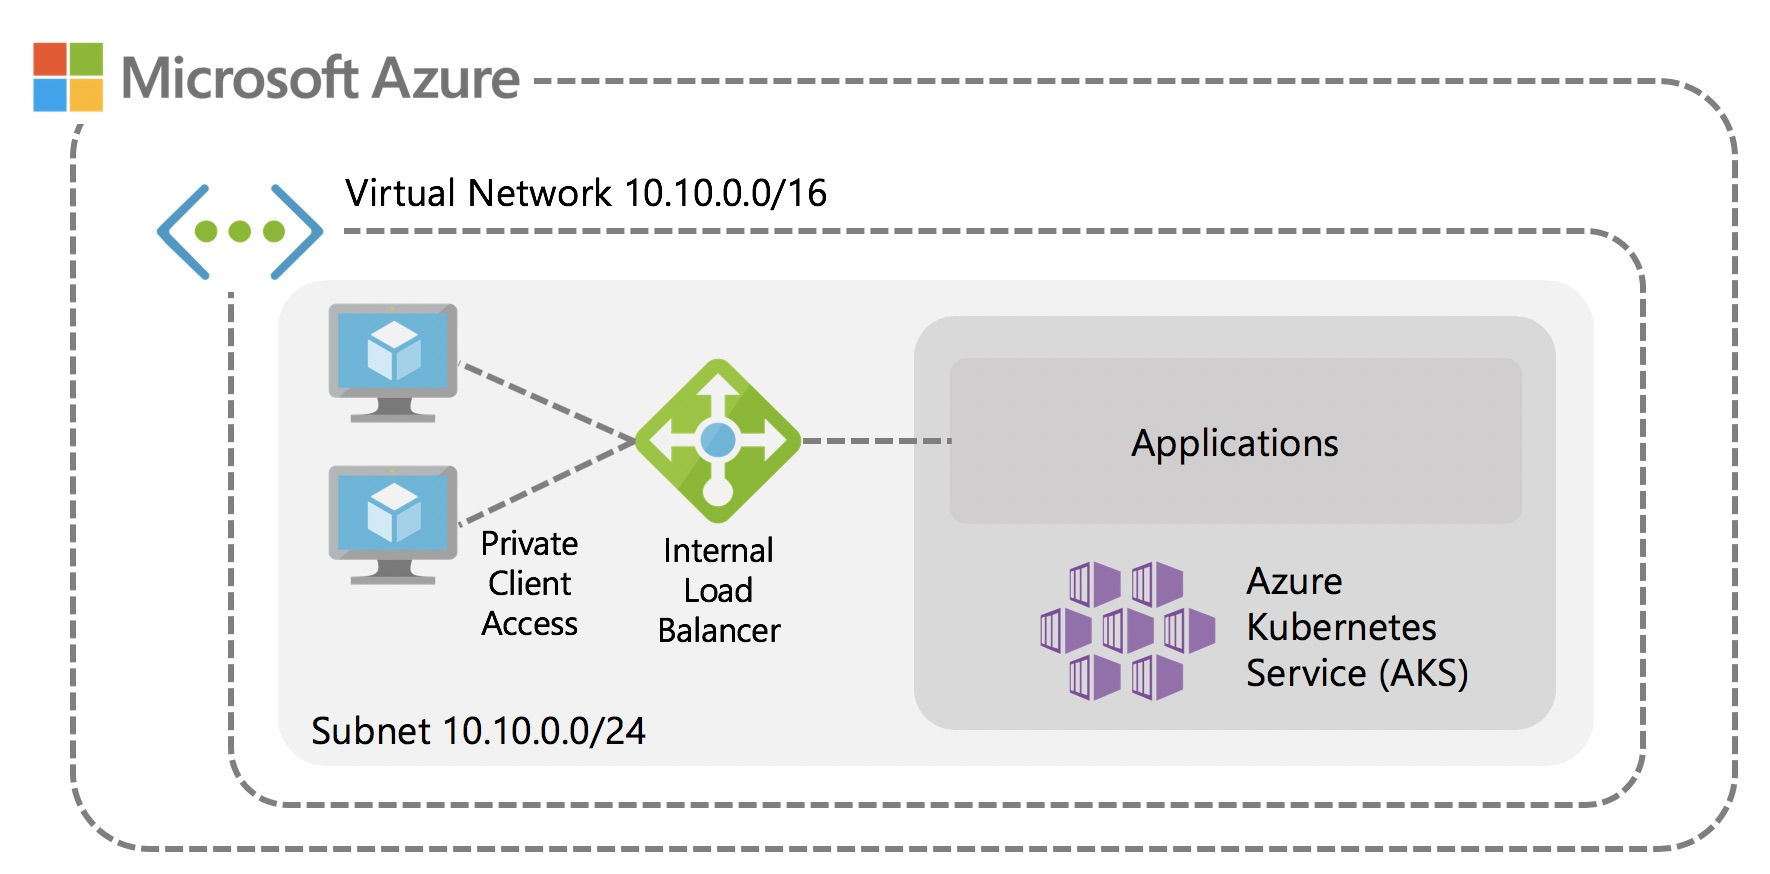 Deploying Internal Applications with private IPs on Azure